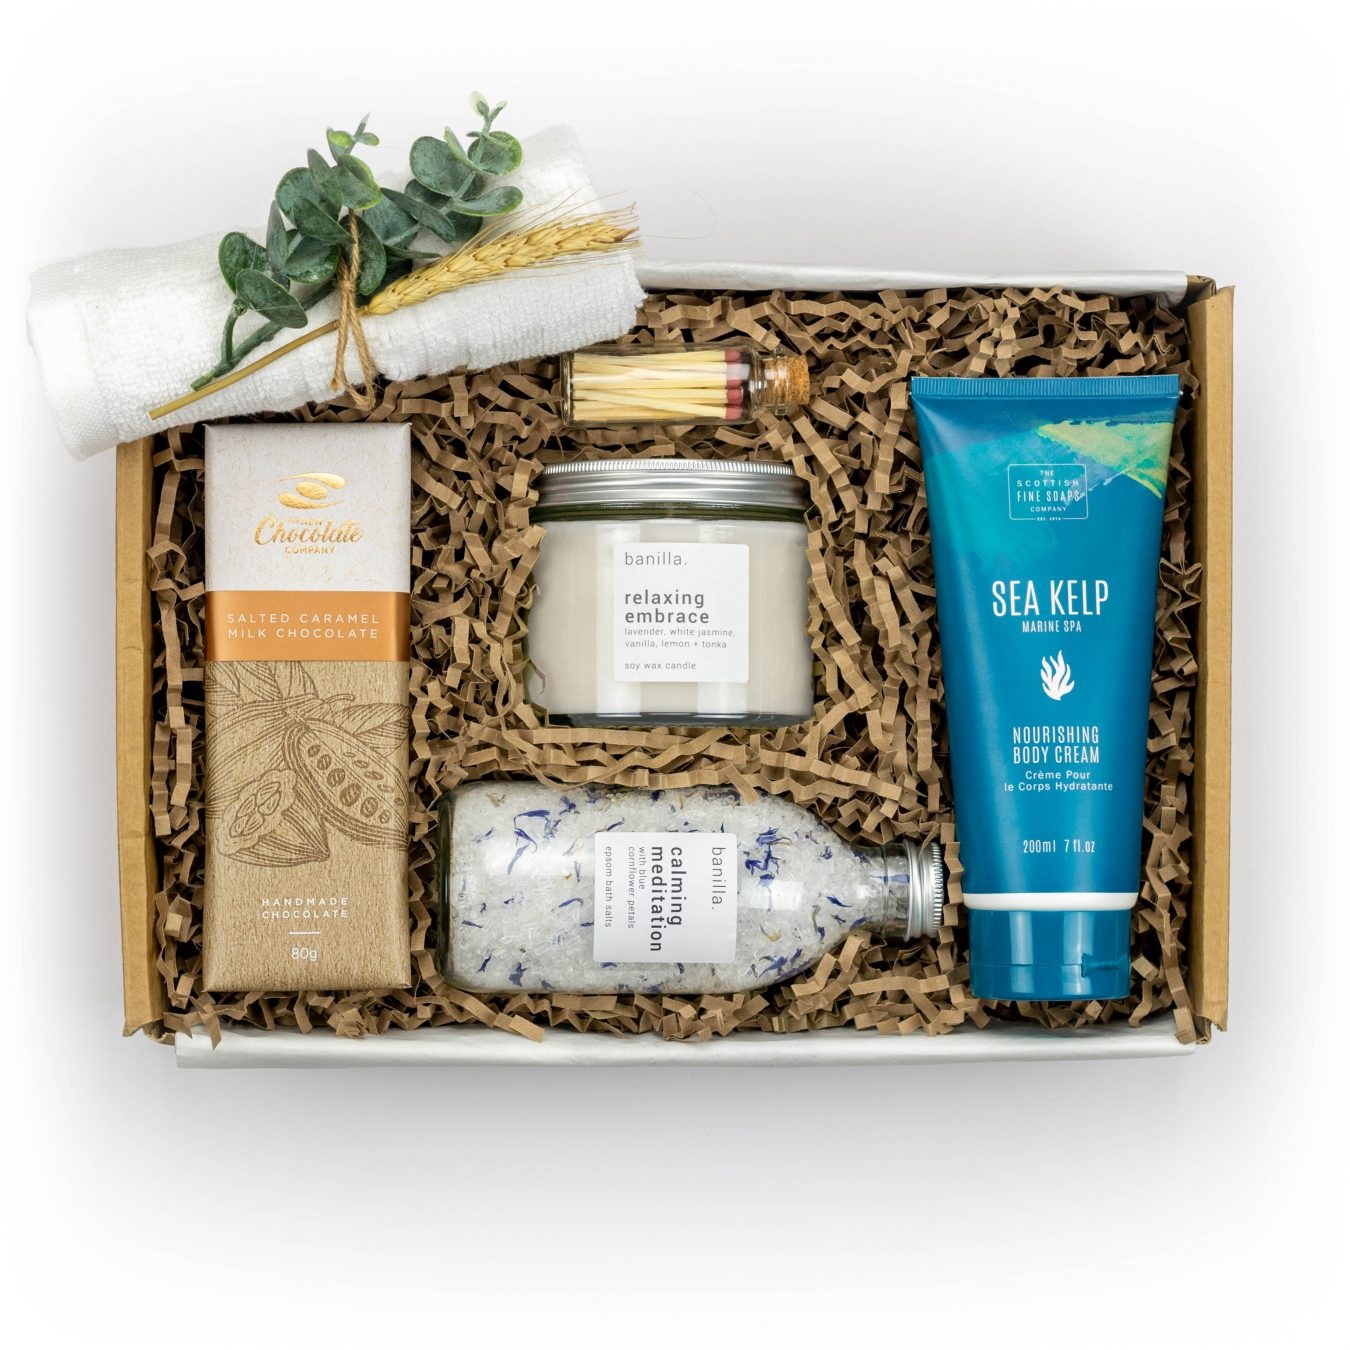 Feel Good Gift box main image with body cream, candle, bath salts, chocolate bar